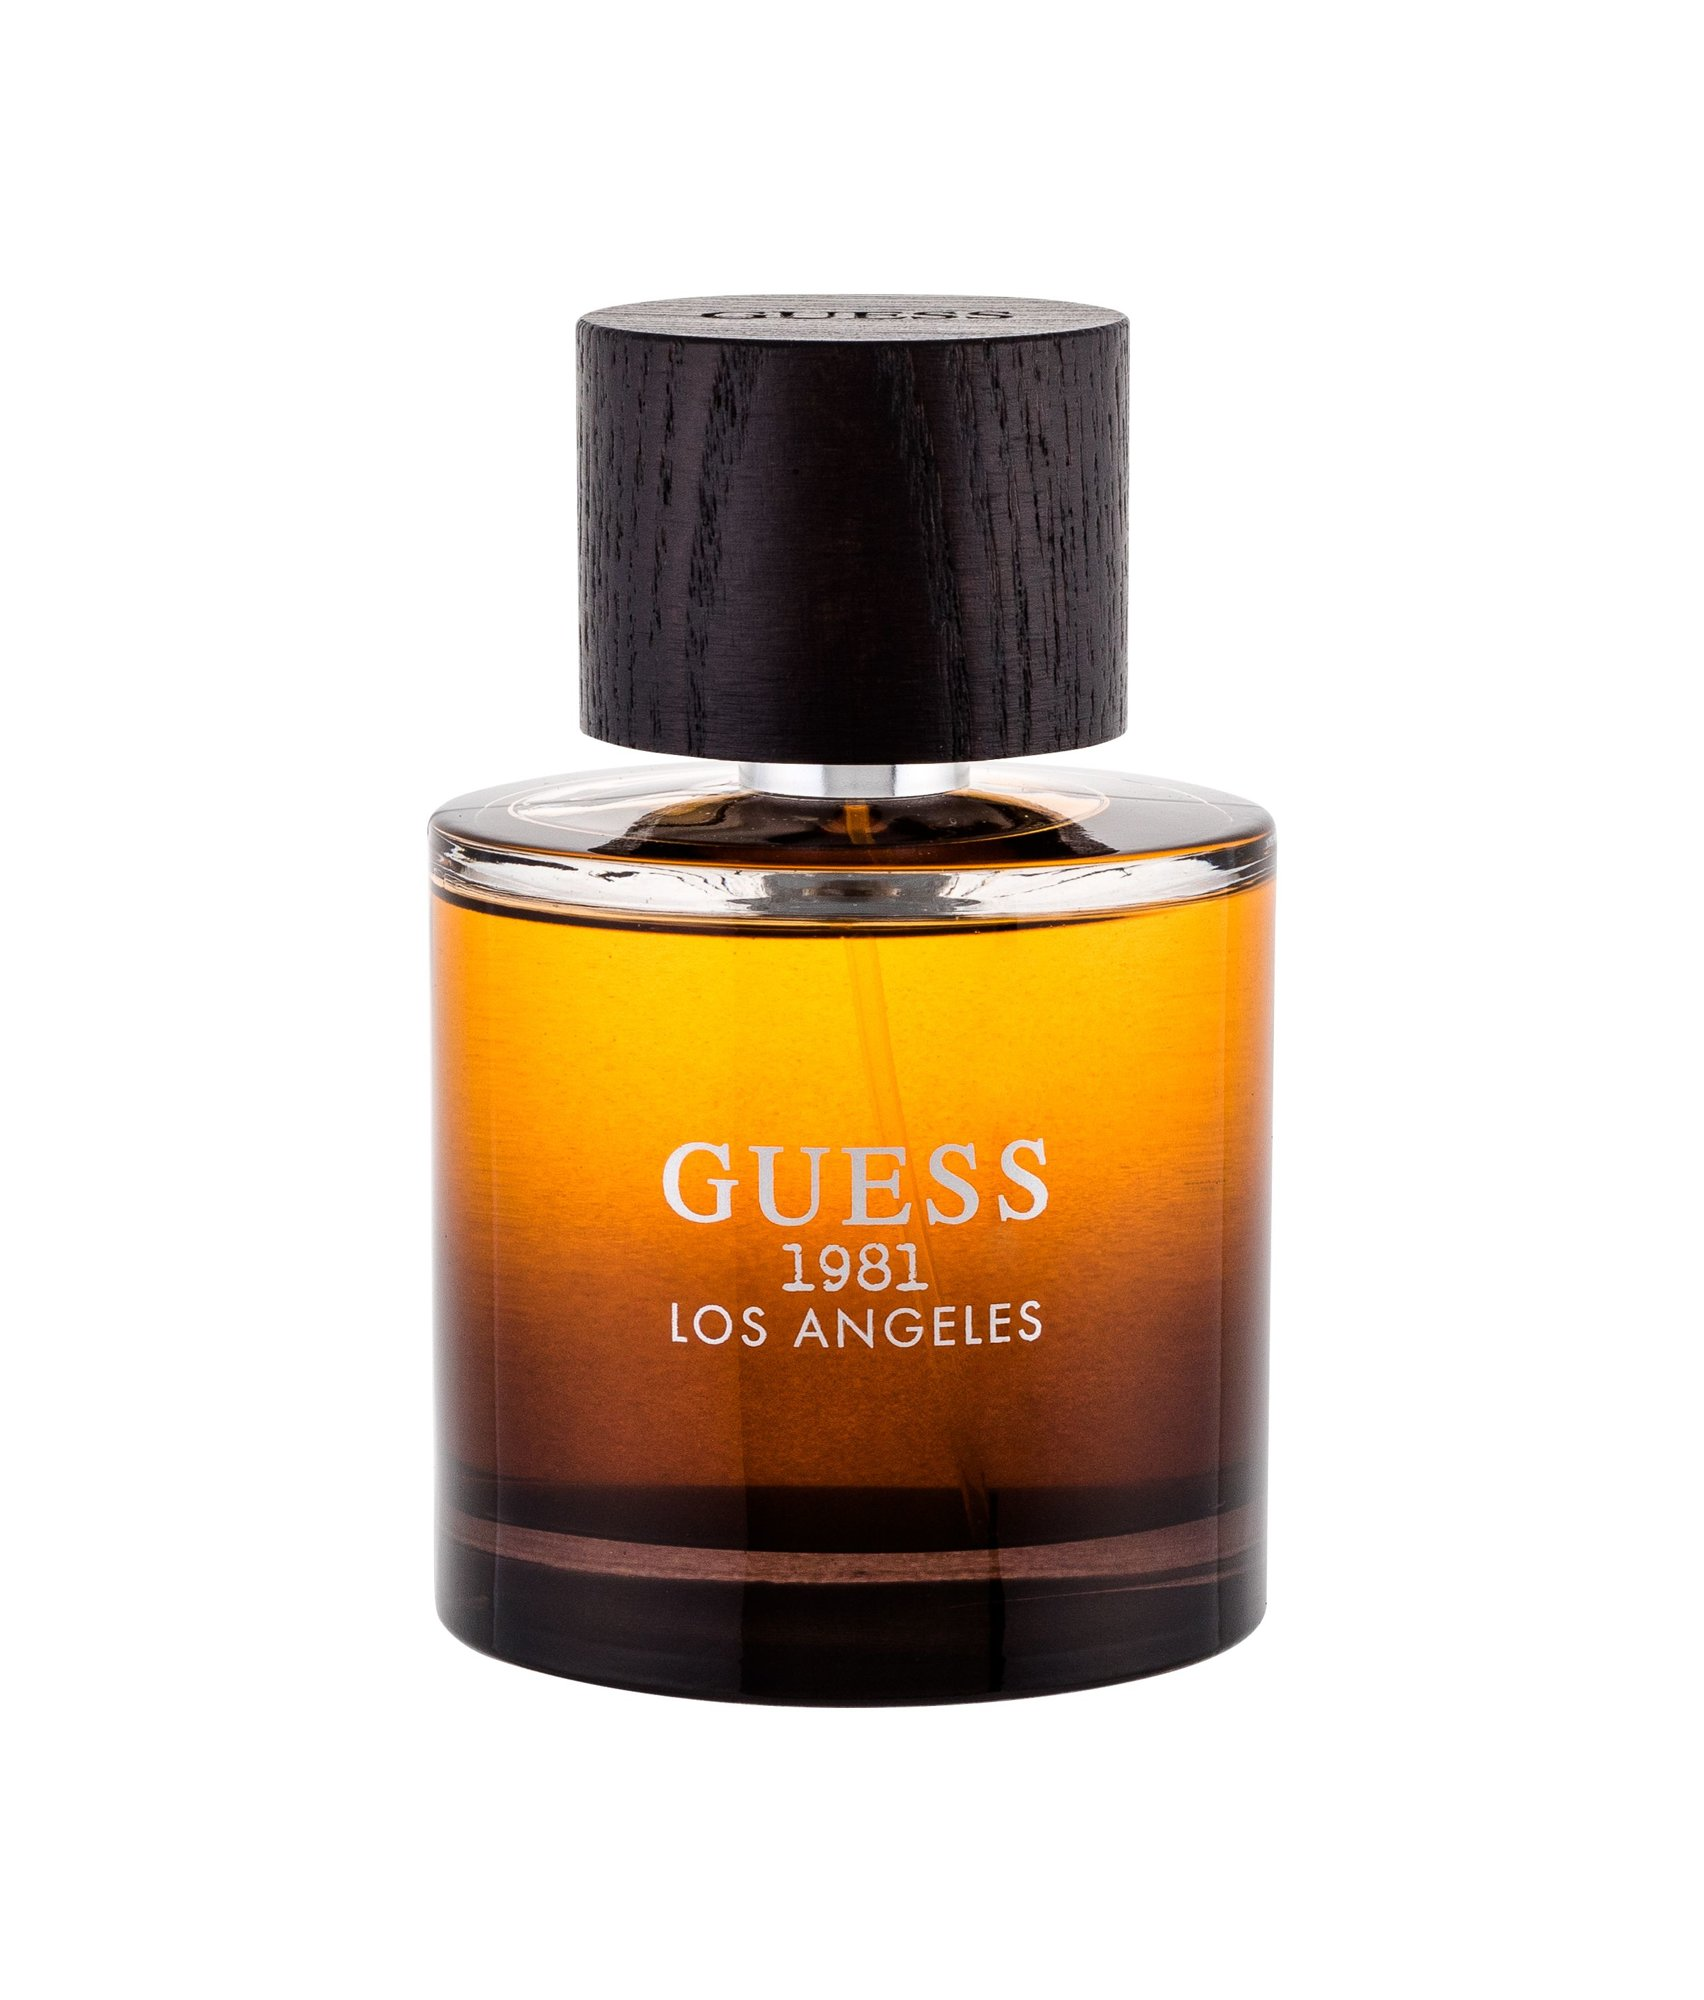 GUESS Guess 1981 Los Angeles (M)